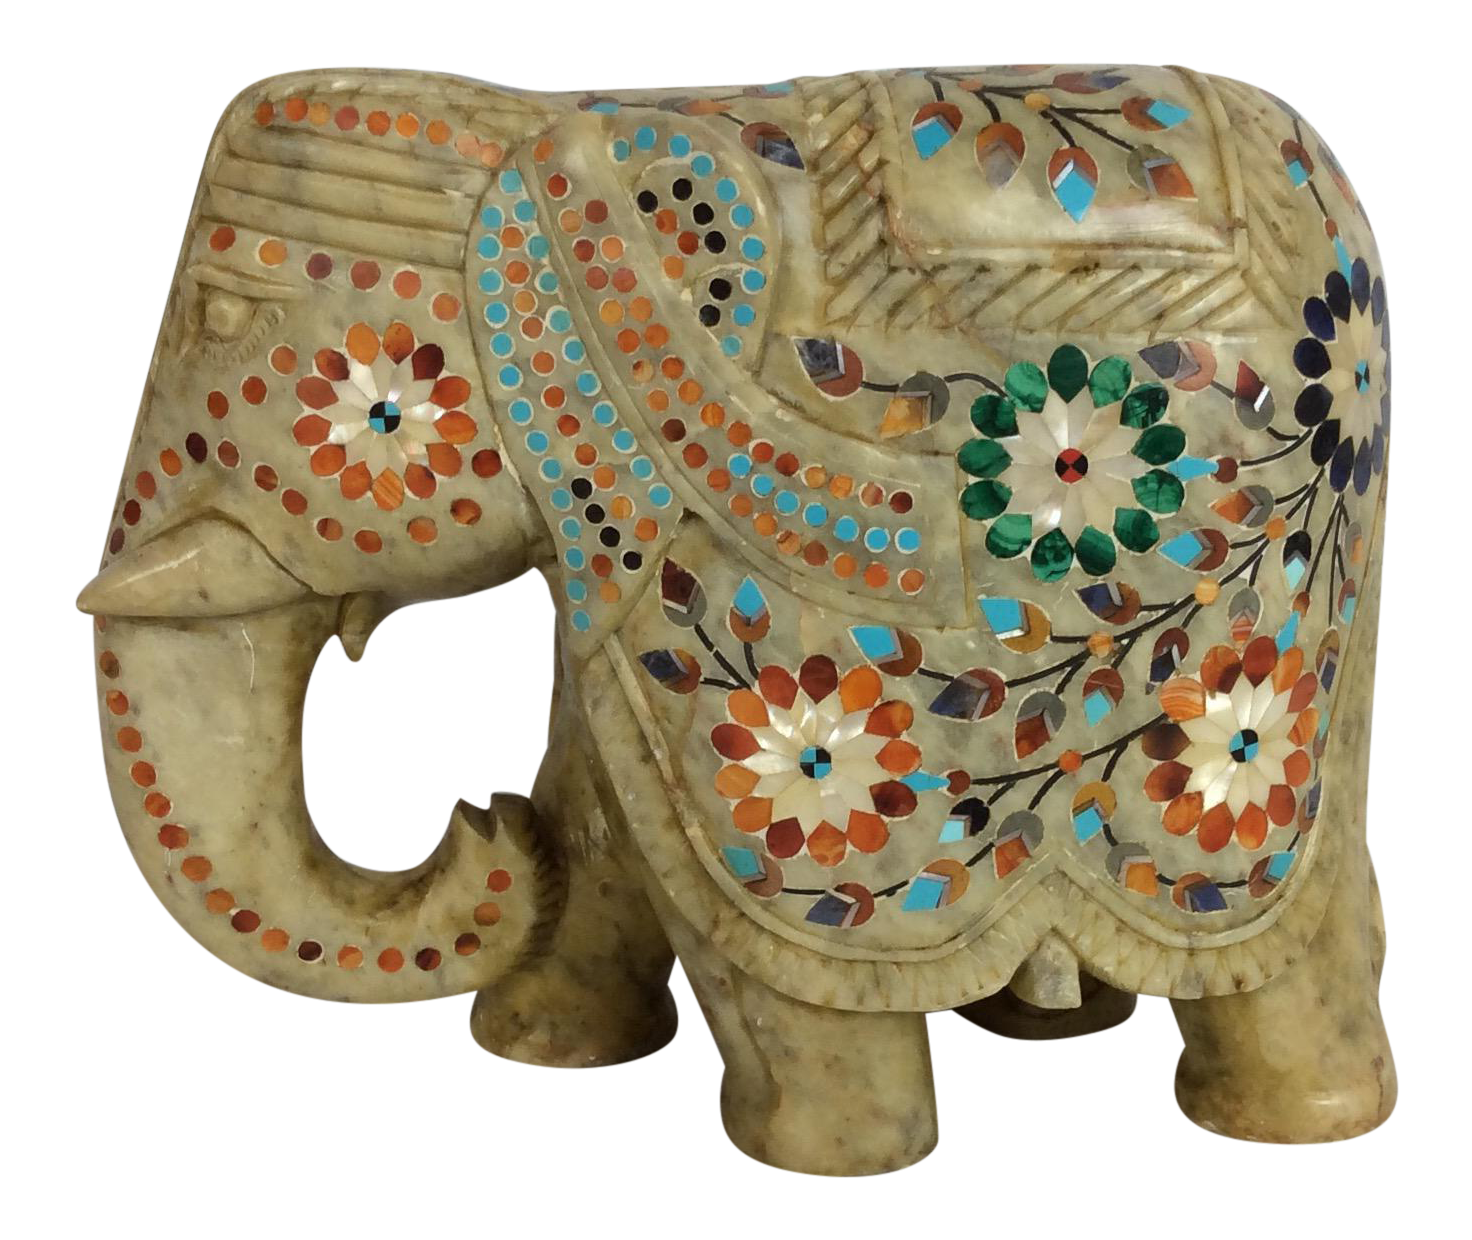 Engraved Limestone Inlay : Carved marble elephant with inlaid precocious stone chairish